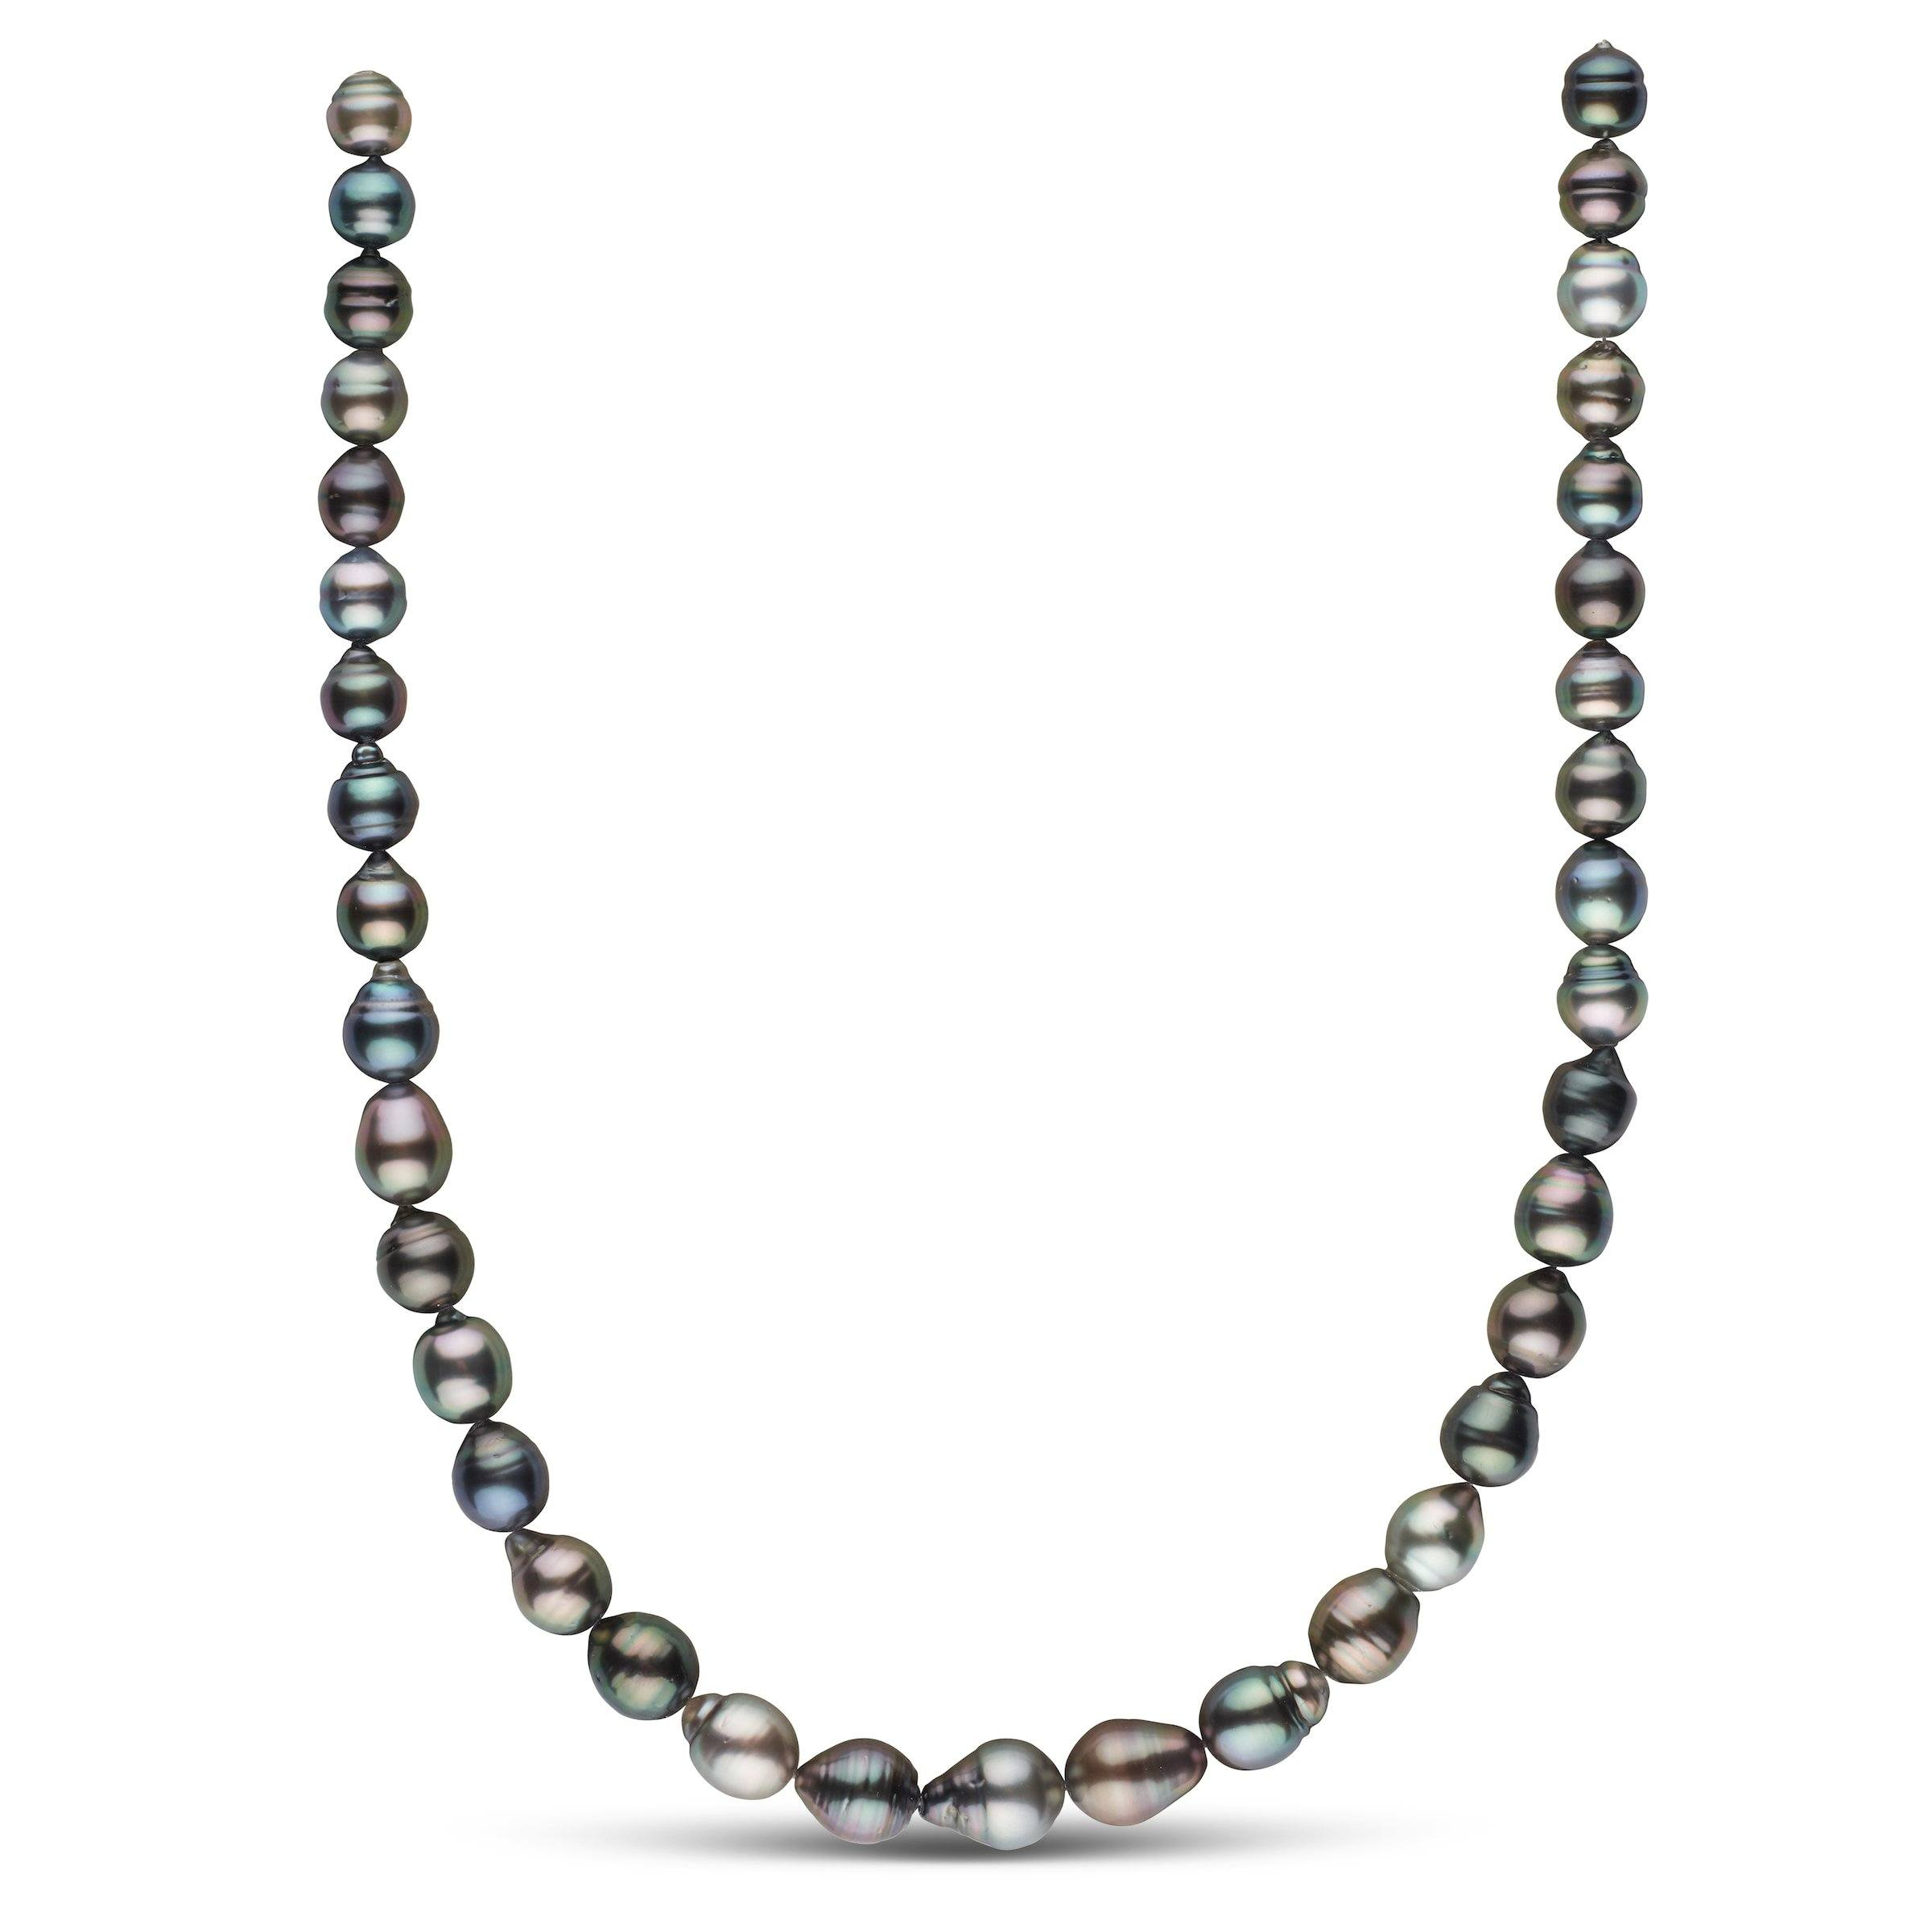 8.4-10.9 mm AAA Tahitian Baroque Pearl Necklace